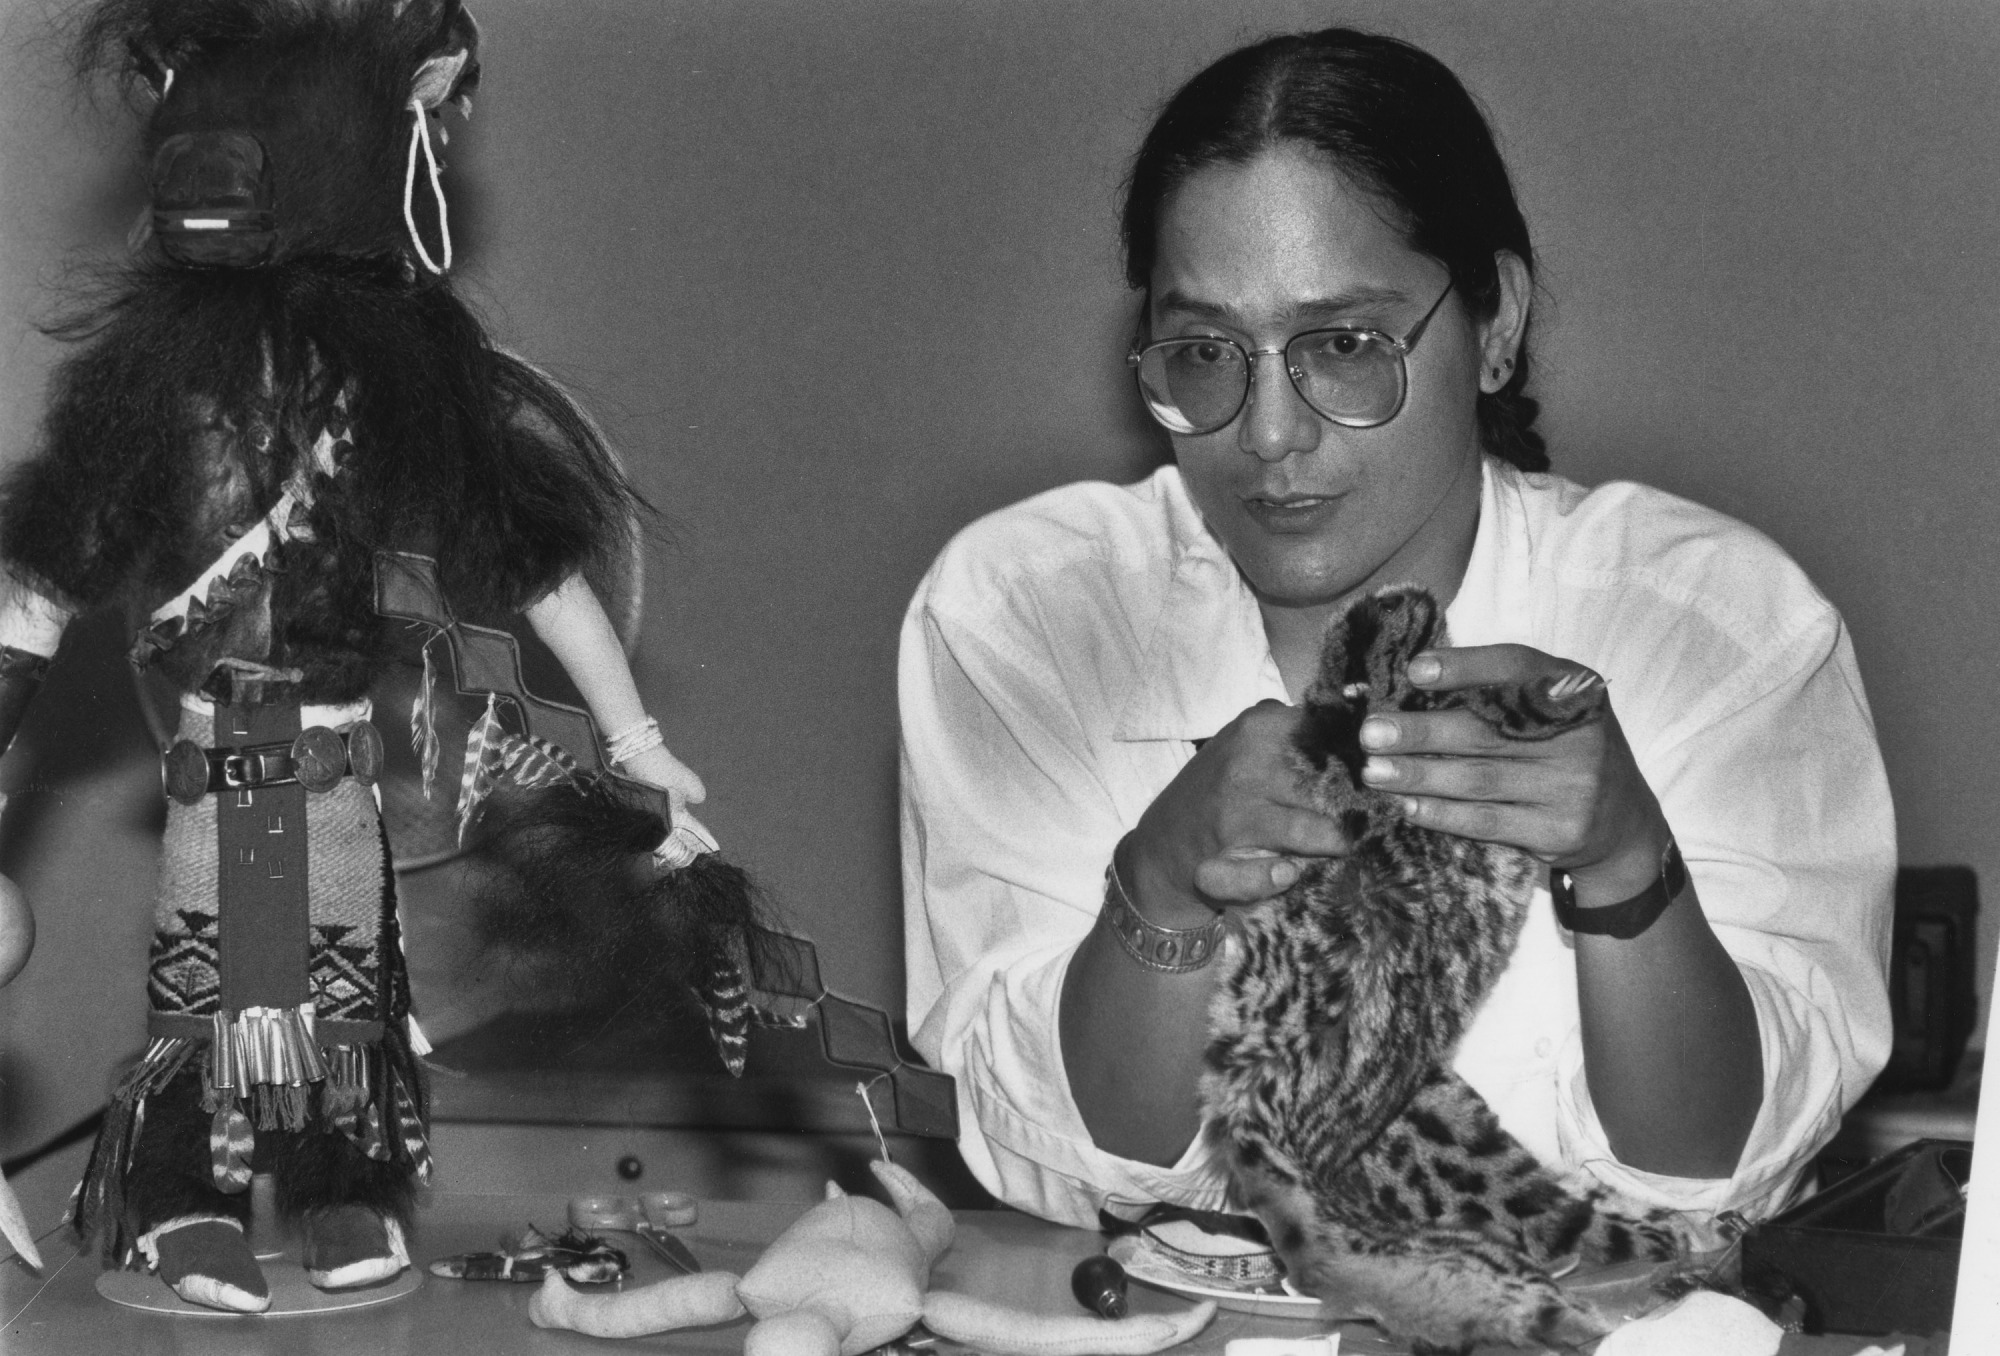 Don Tenoso, Sioux Doll-maker and Puppeteer